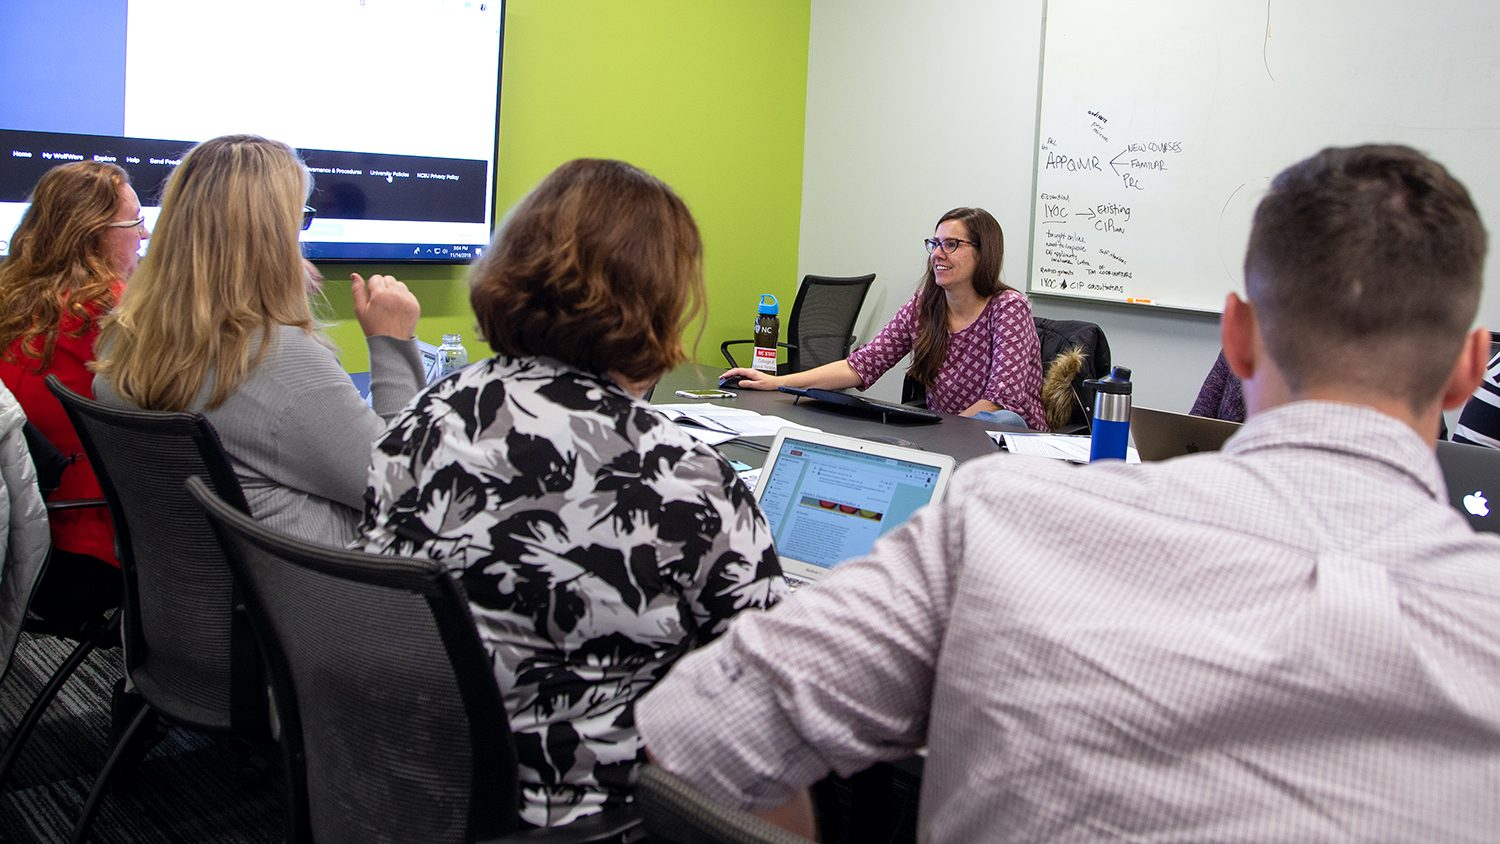 Instructional Designer Bethanne Tobey (center) facilitates a face-to-face working meeting of the Fall 2018 Online Course Improvement Program cohort. Bethanne is pictured at the back of the table with participants on the other side.